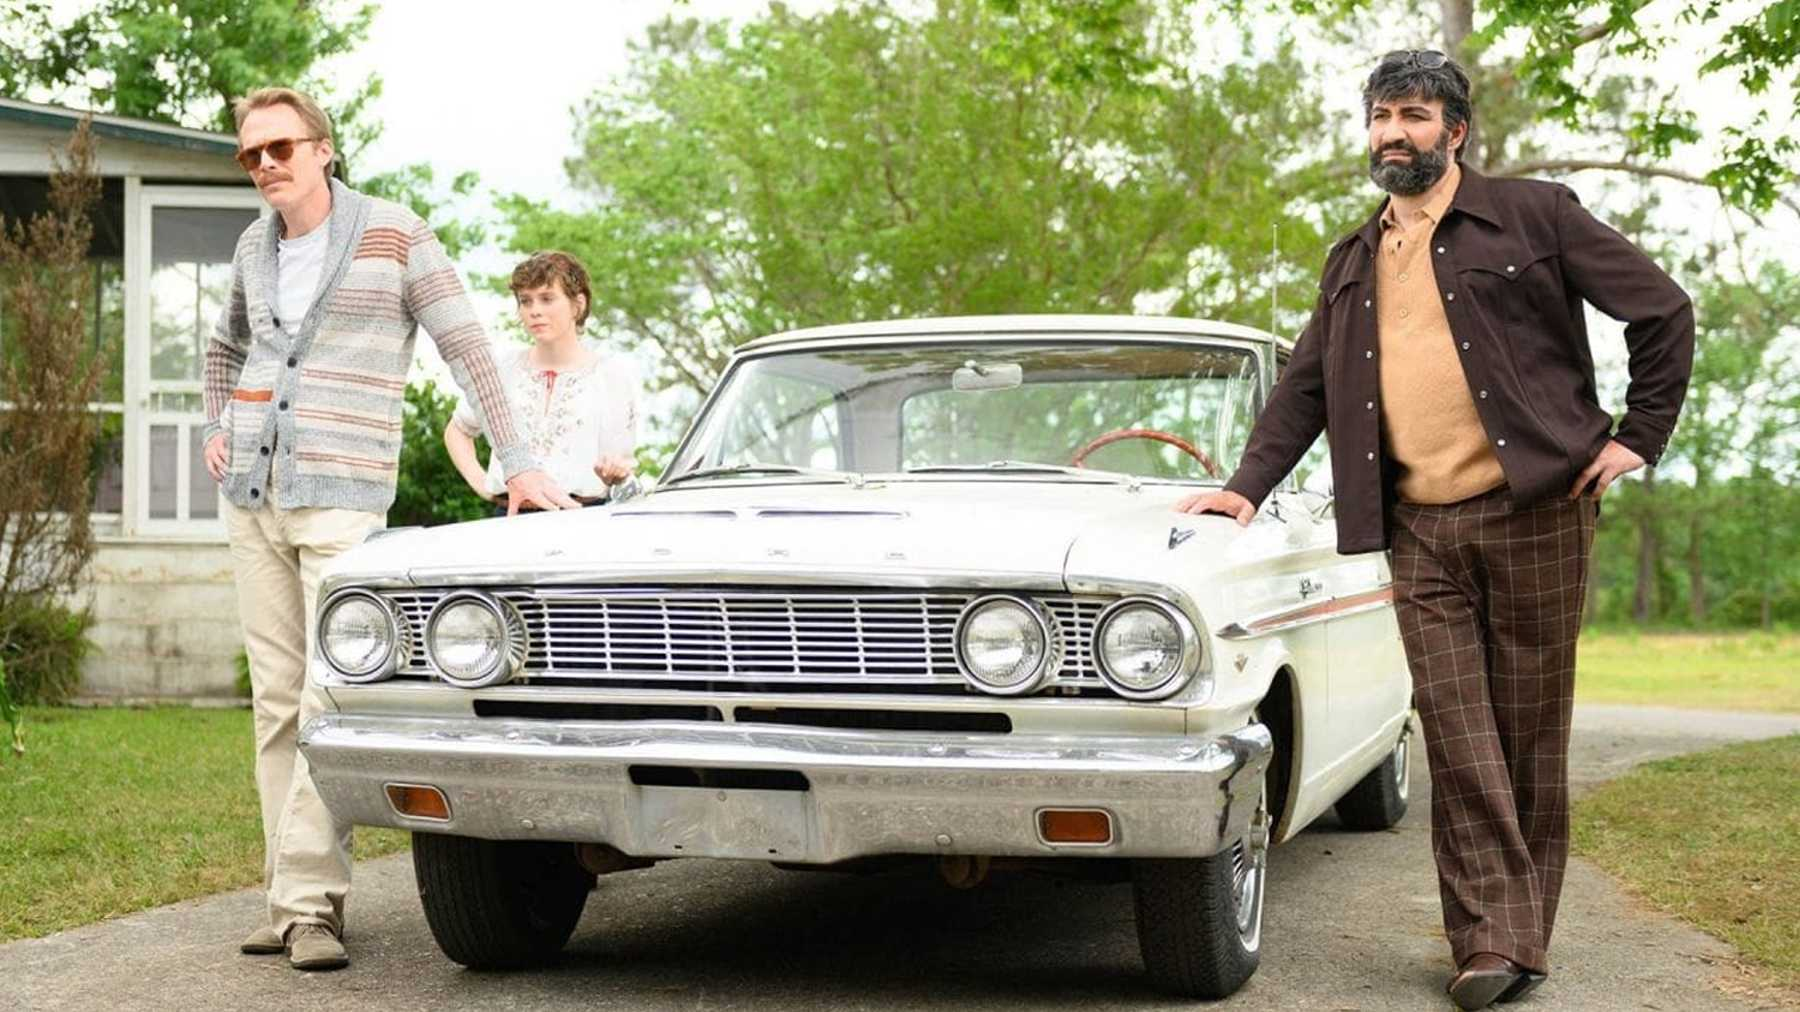 Paul Bettany, Sophia Lillis, and Peter Macdissi stand with their hands on a car in the movie Uncle Frank